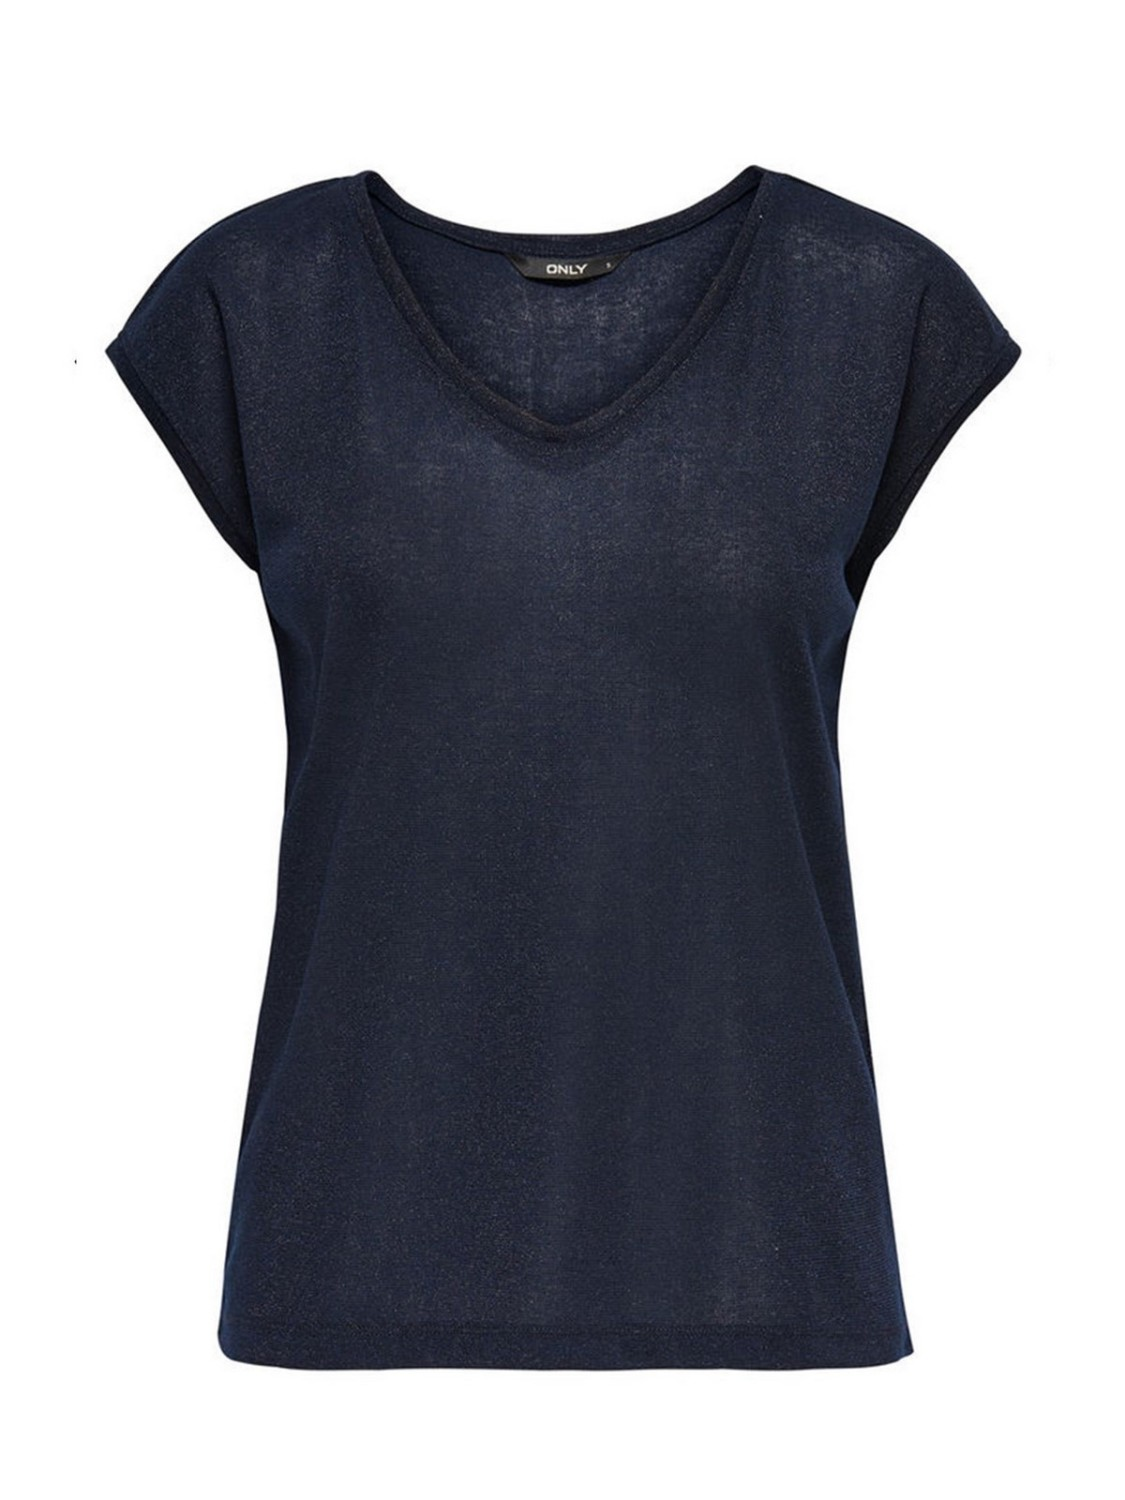 ONLY shirt / top Blauw 15136069